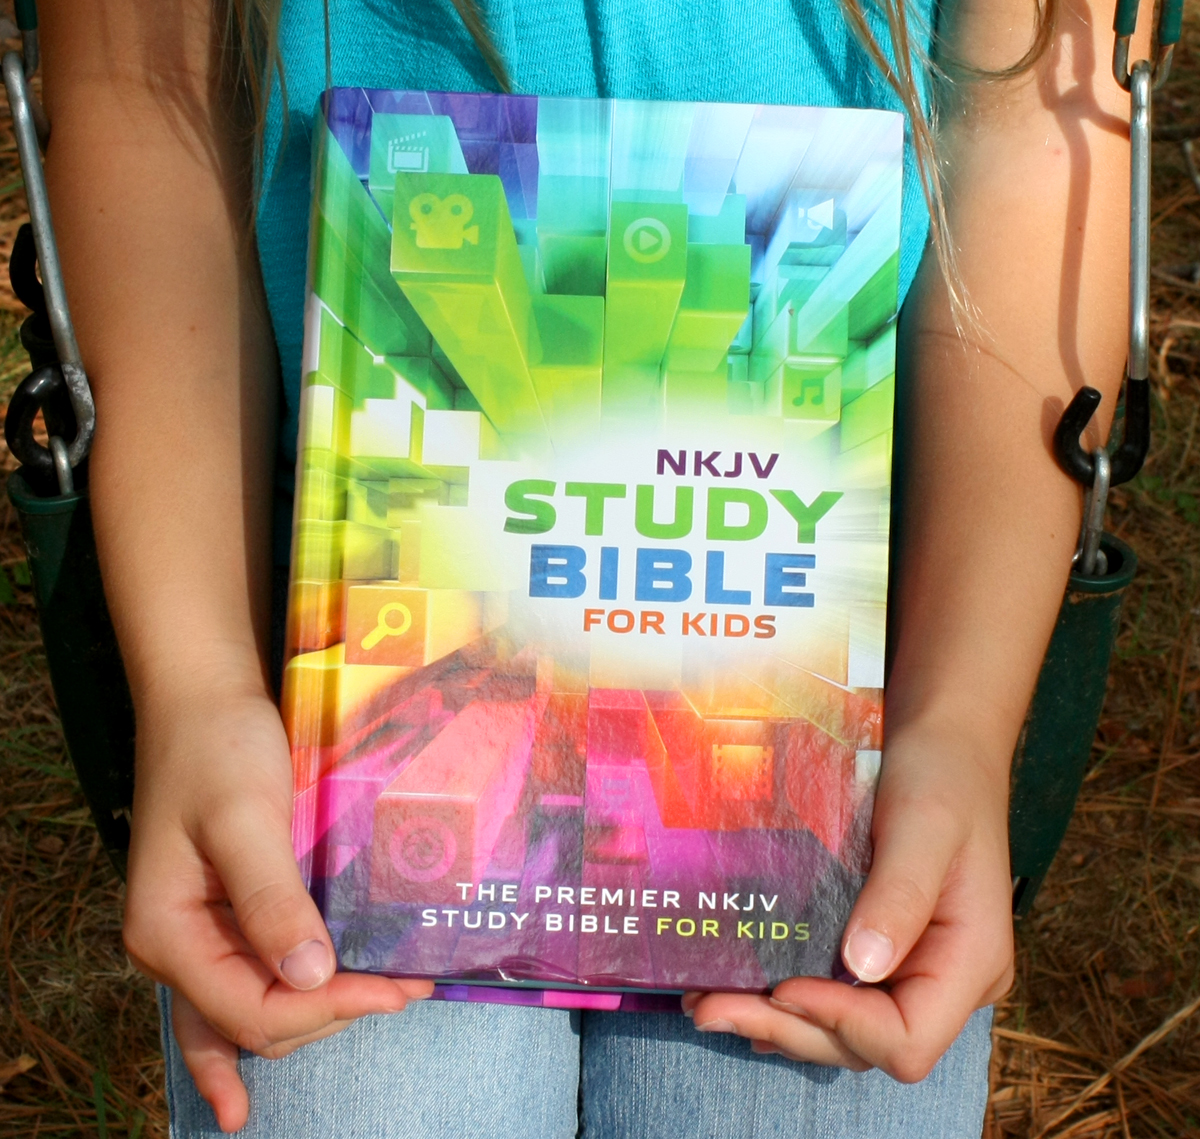 The NKJV Study Bible For Kids Book Review